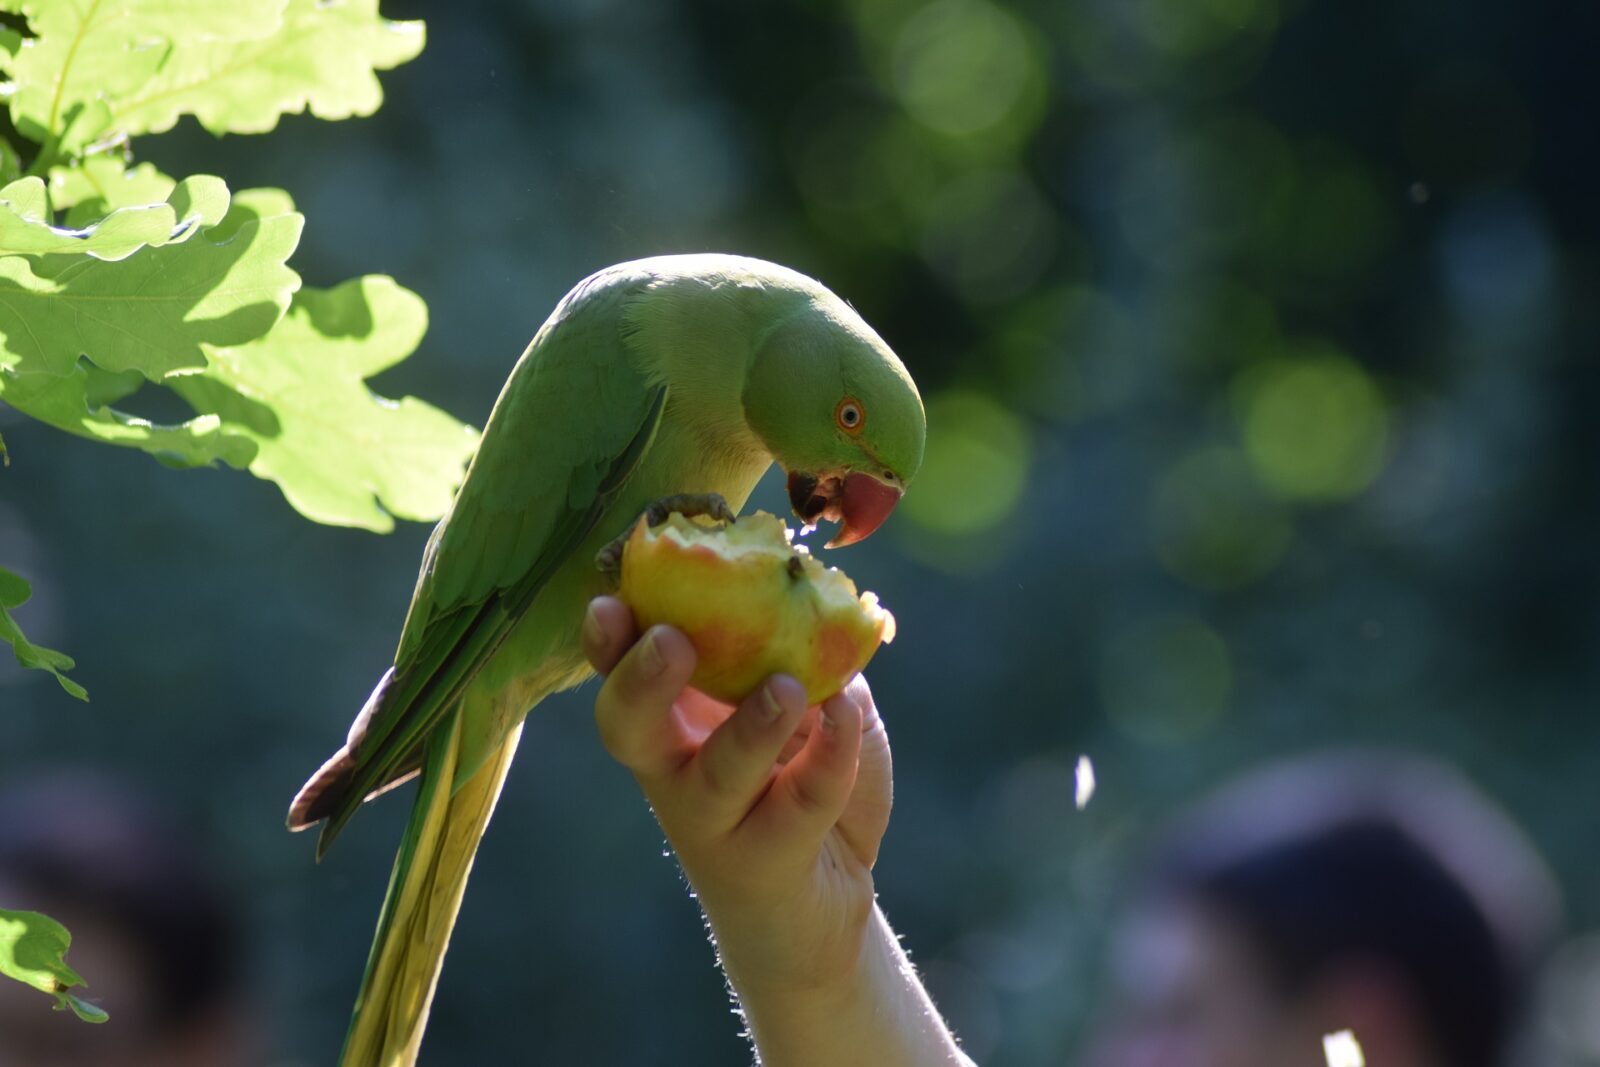 What fruits and vegetable parakeets can eat?